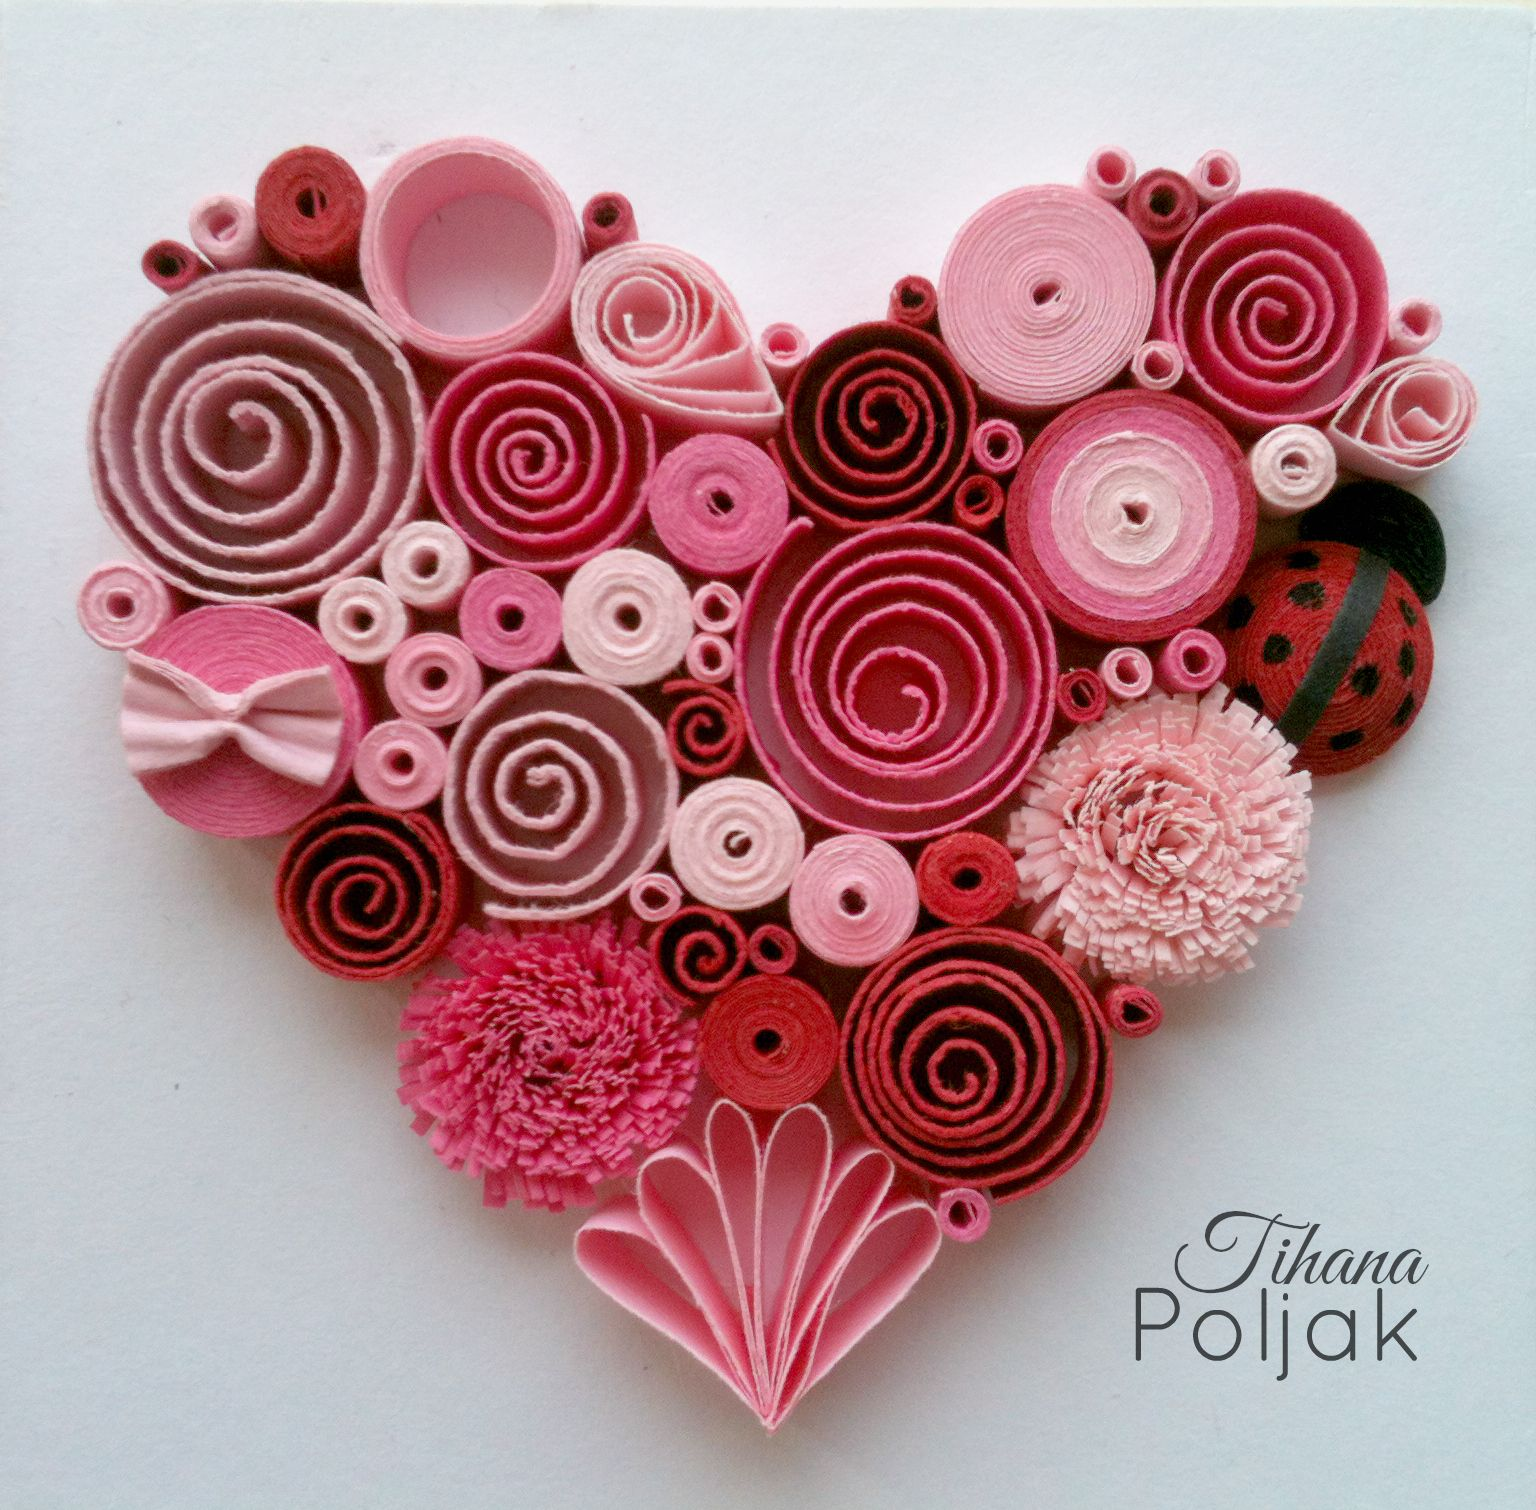 card craft for valentine day - Quilled heart quilling red rose heart love quilling